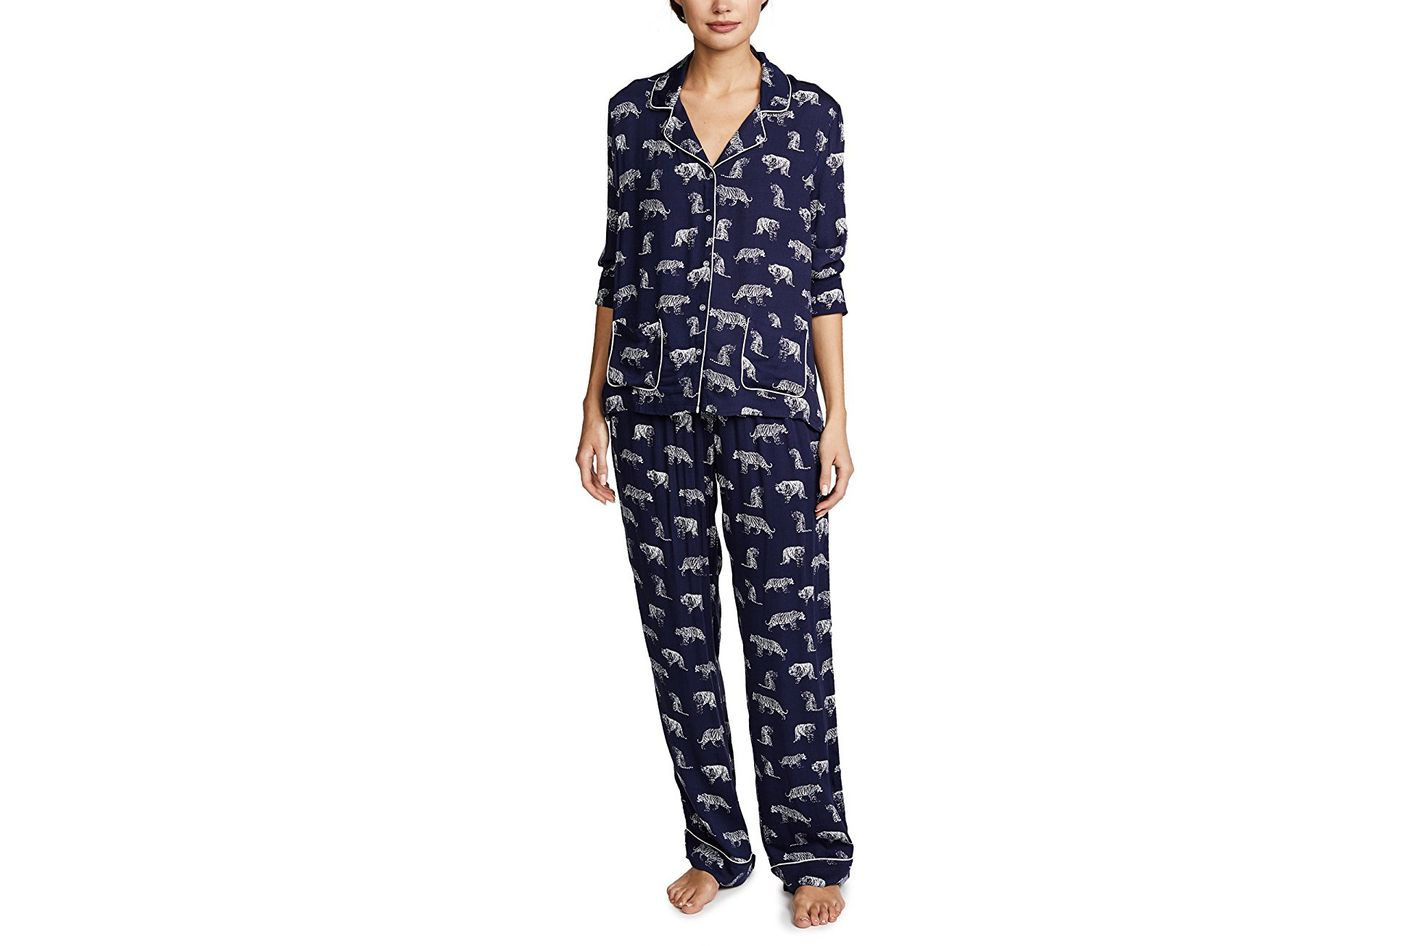 b825f3fe230 The Best Silk, Cotton, and Jacquard Pajamas for Women